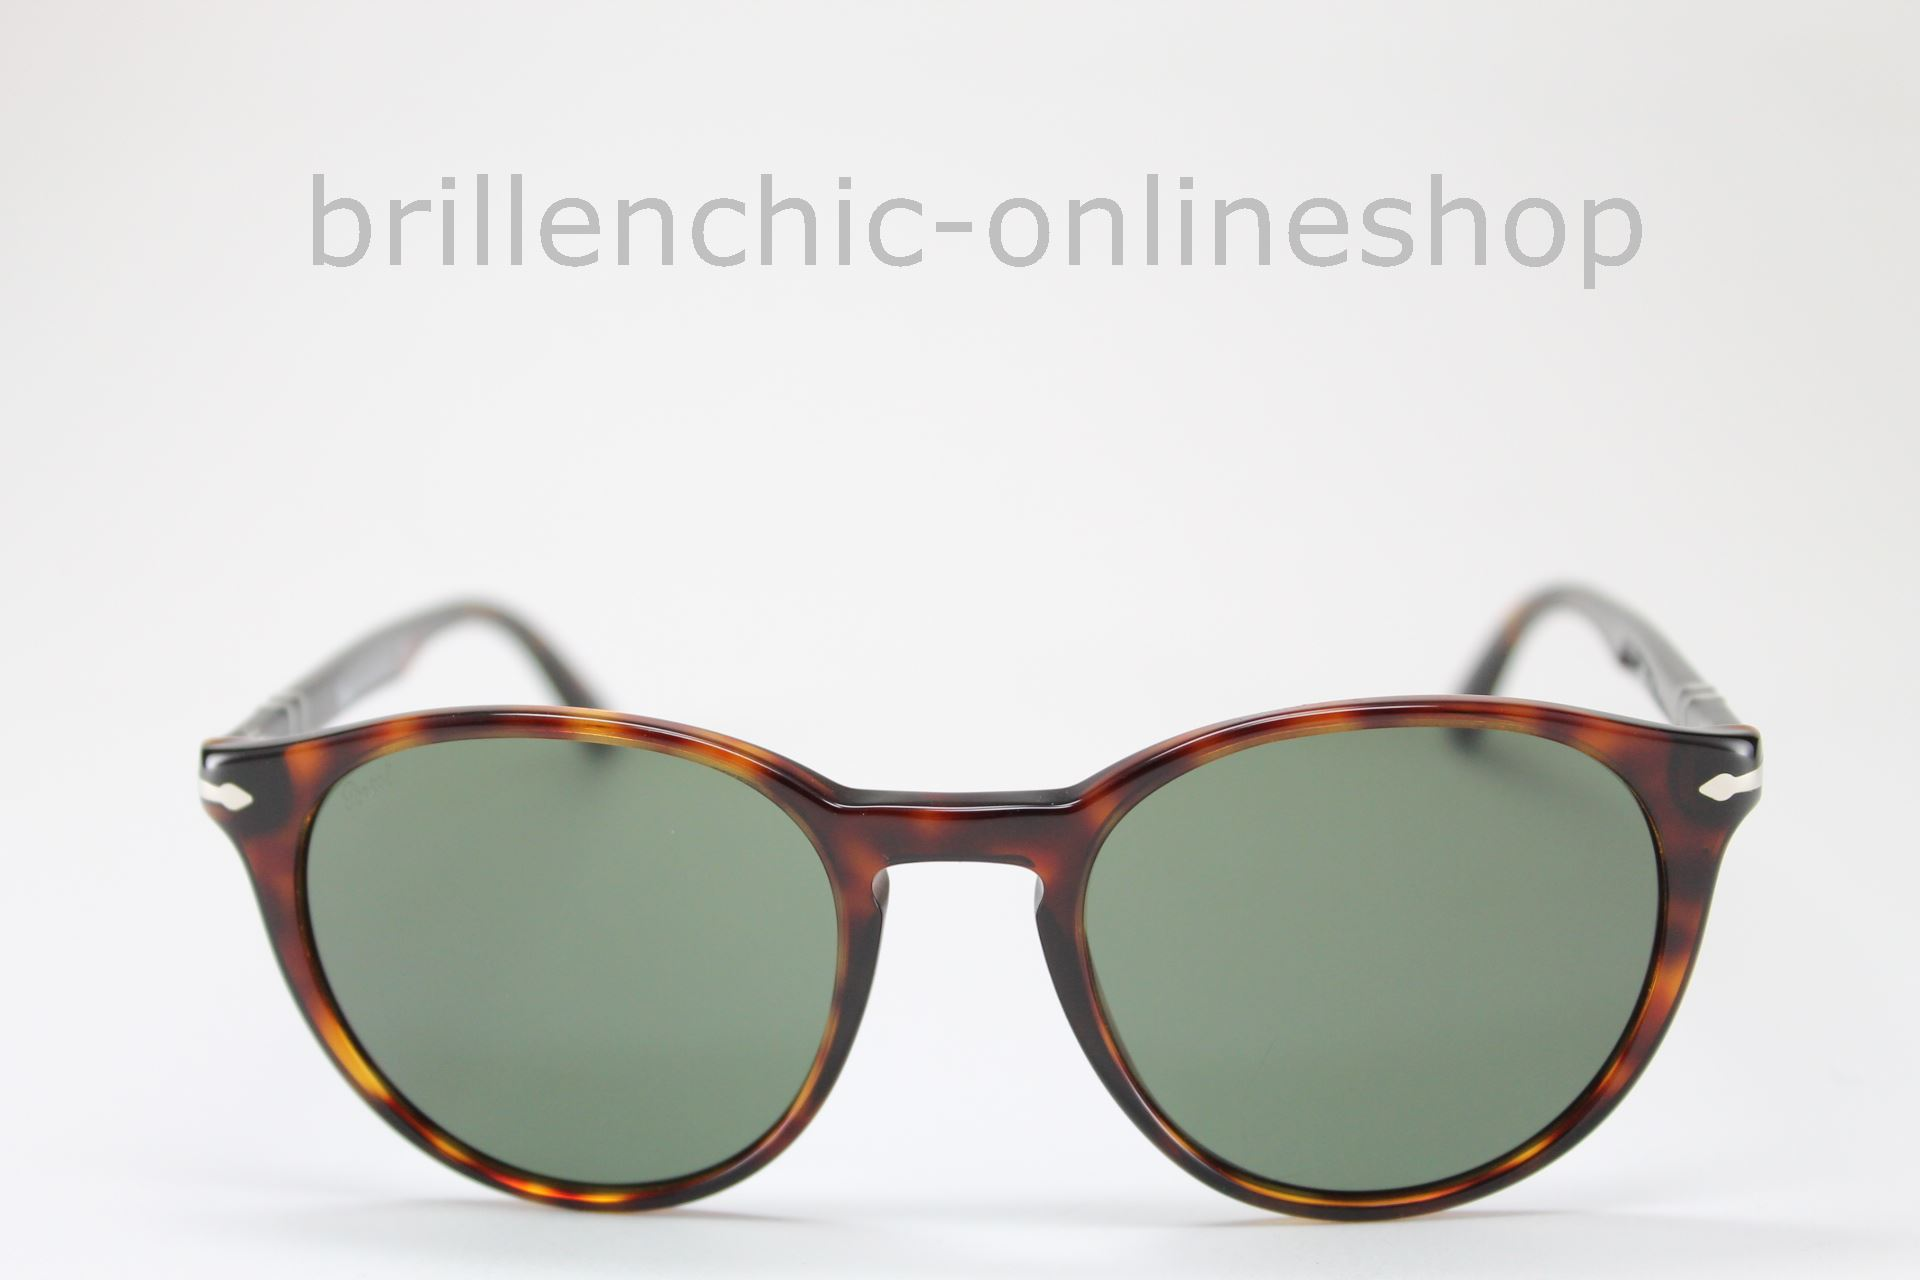 Brillenchic Po In 901531 3152 3152s Berlin Onlineshop Persol xodBeC